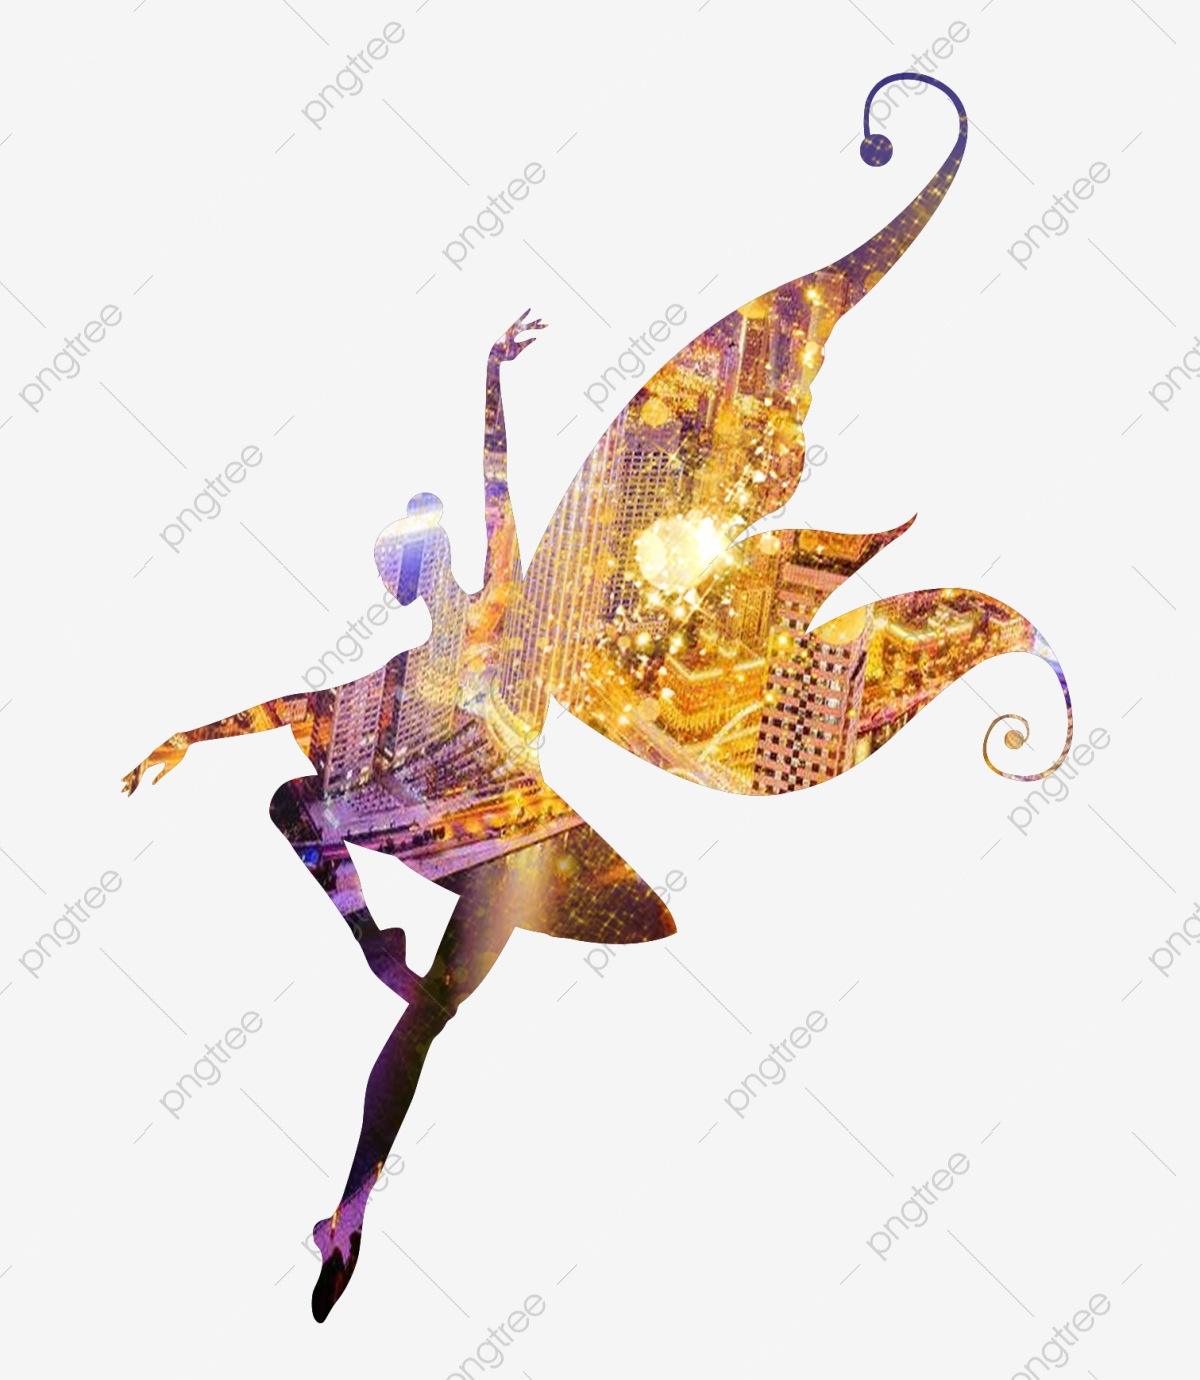 Girl dancing. Silhouette clipart